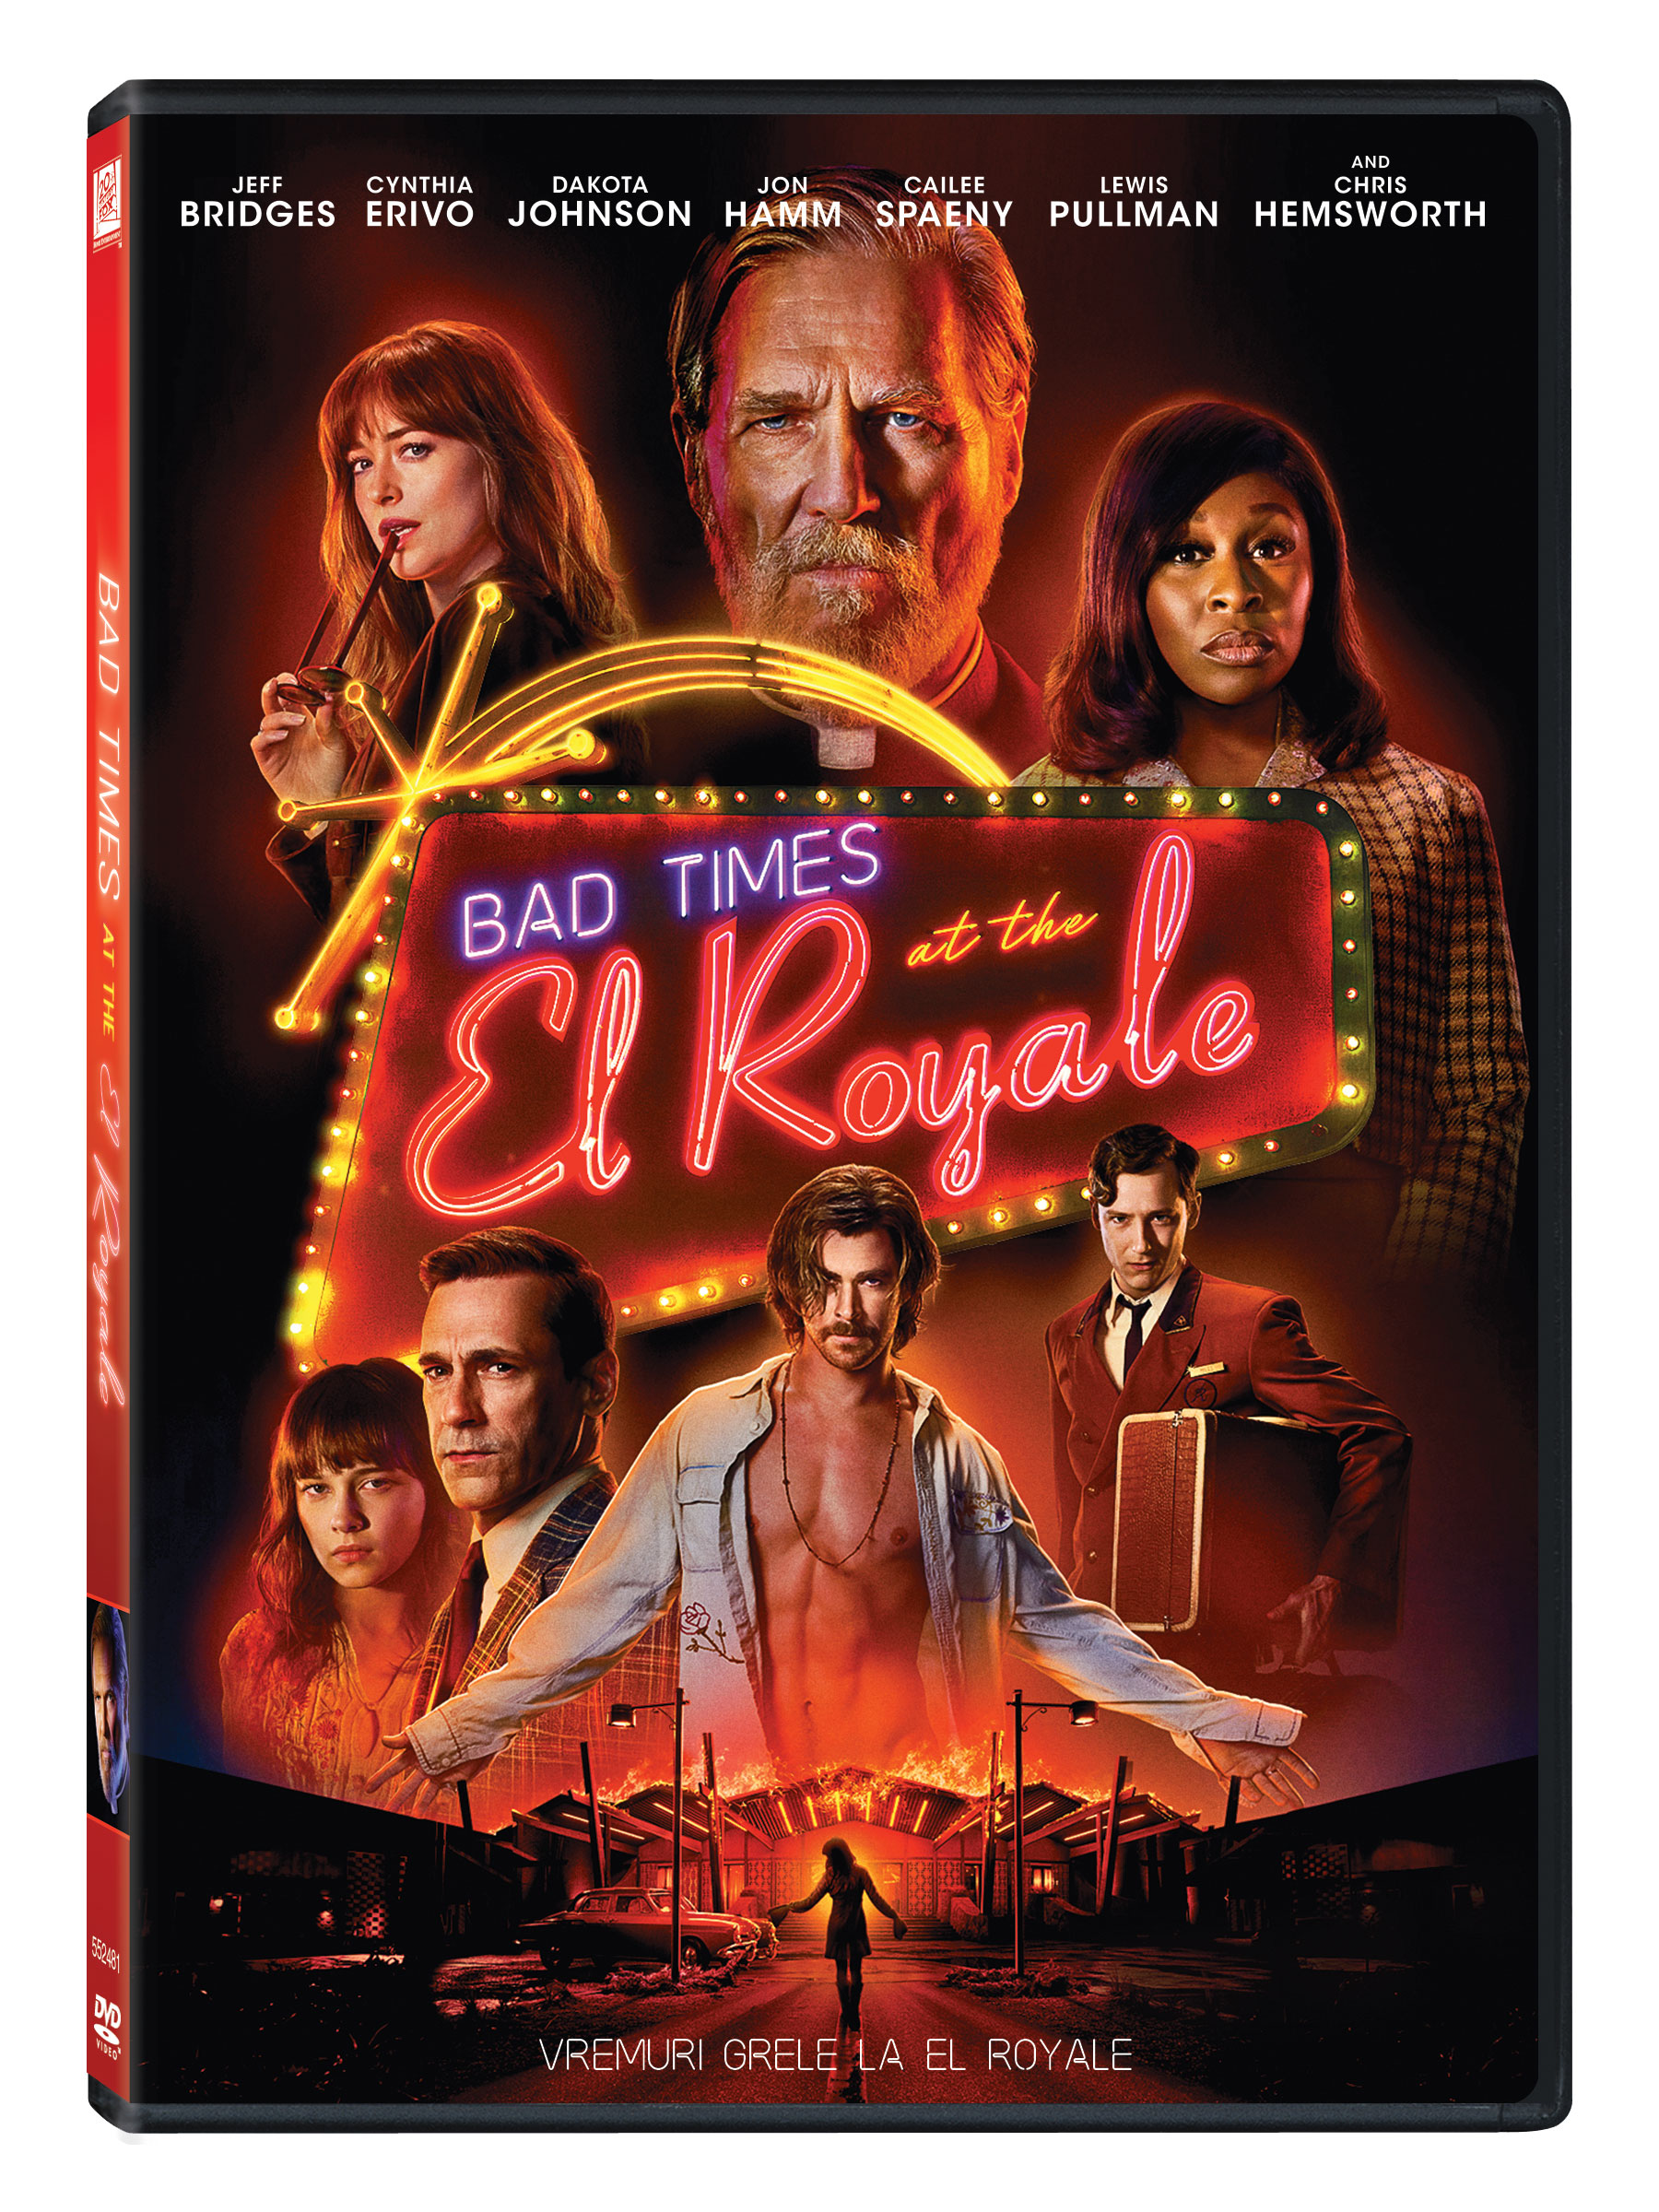 Vremuri grele la El Royale / Bad times at the El Royale thumbnail